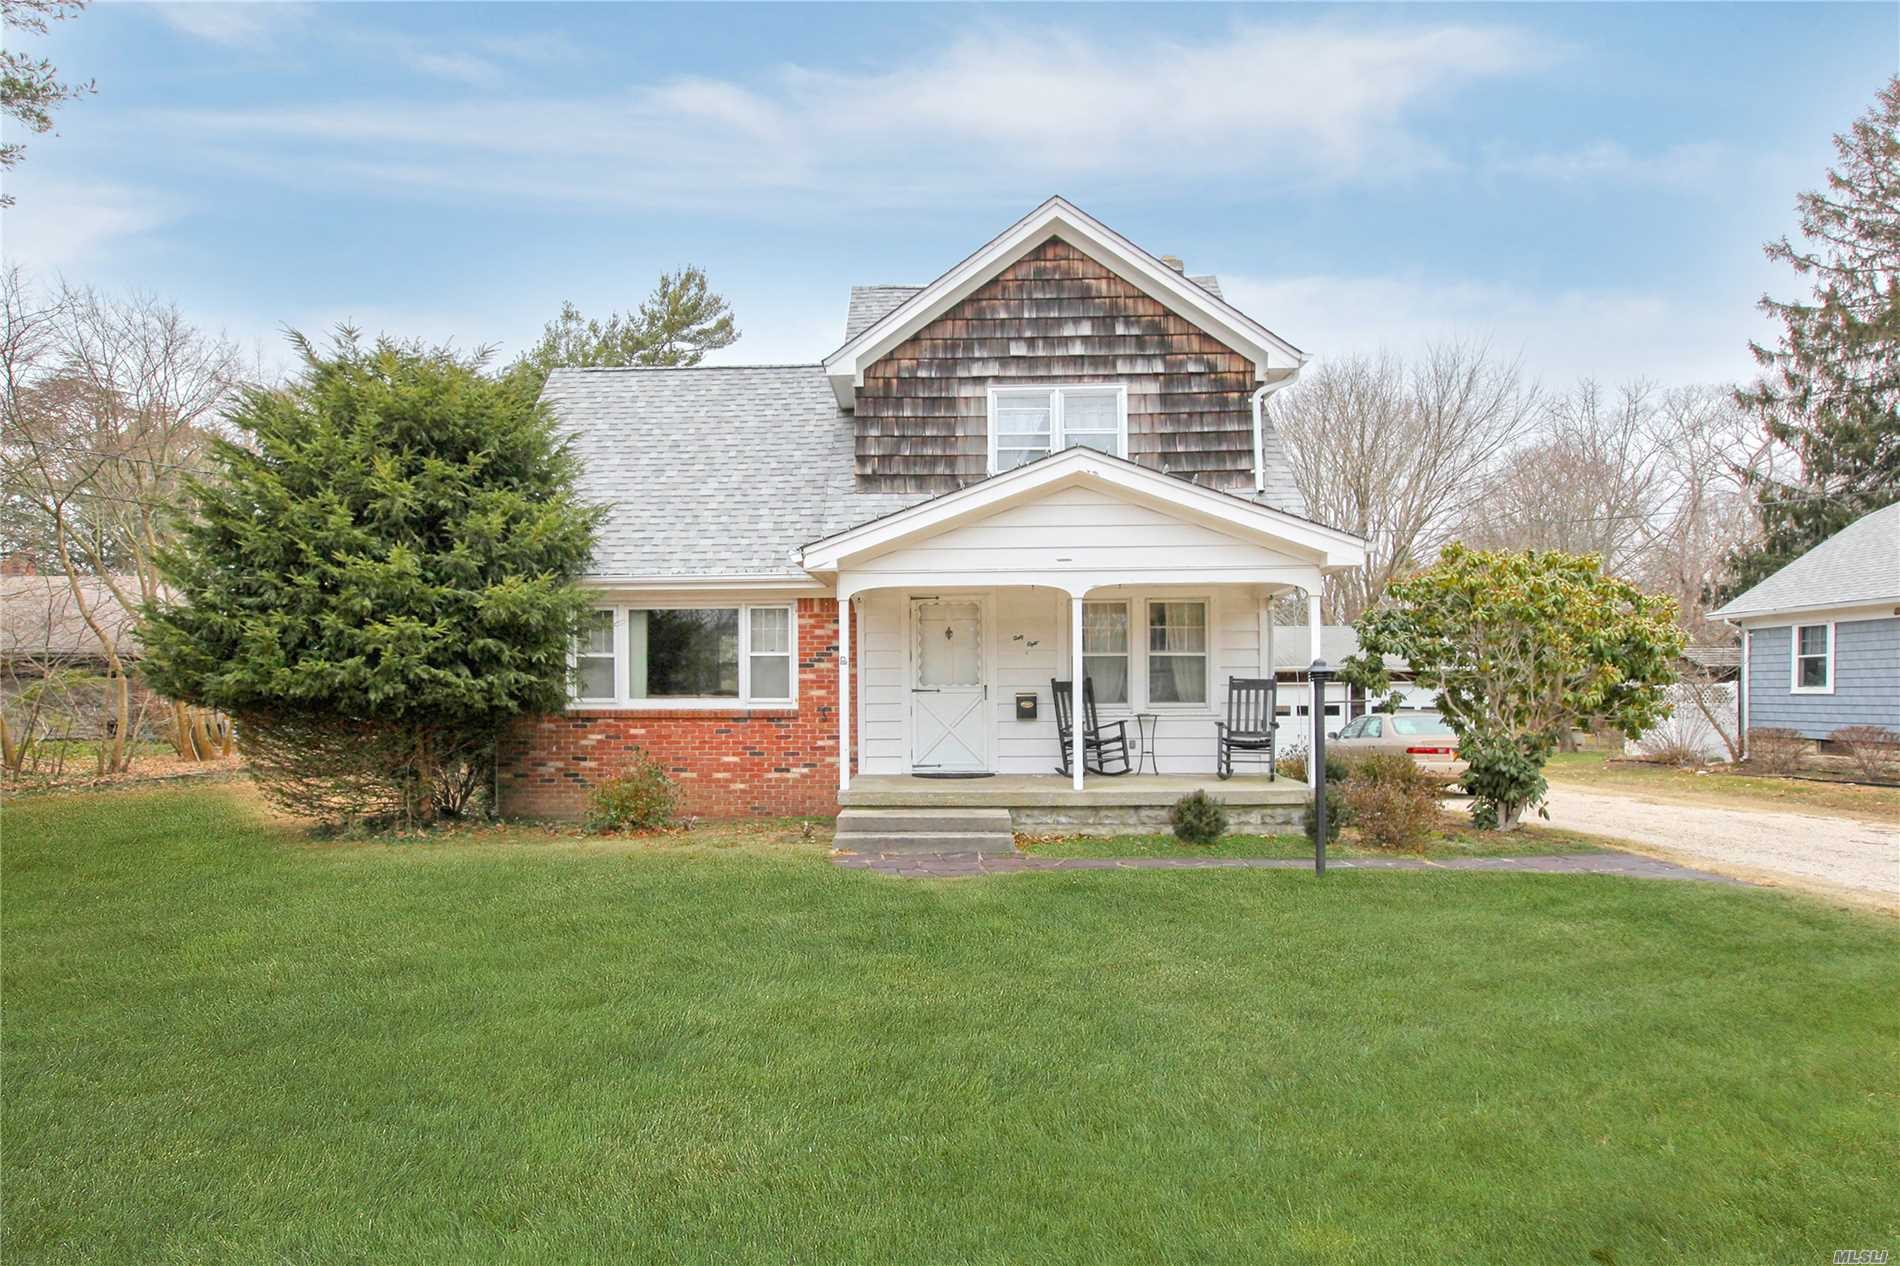 68 Durkee Ln - E. Patchogue, New York